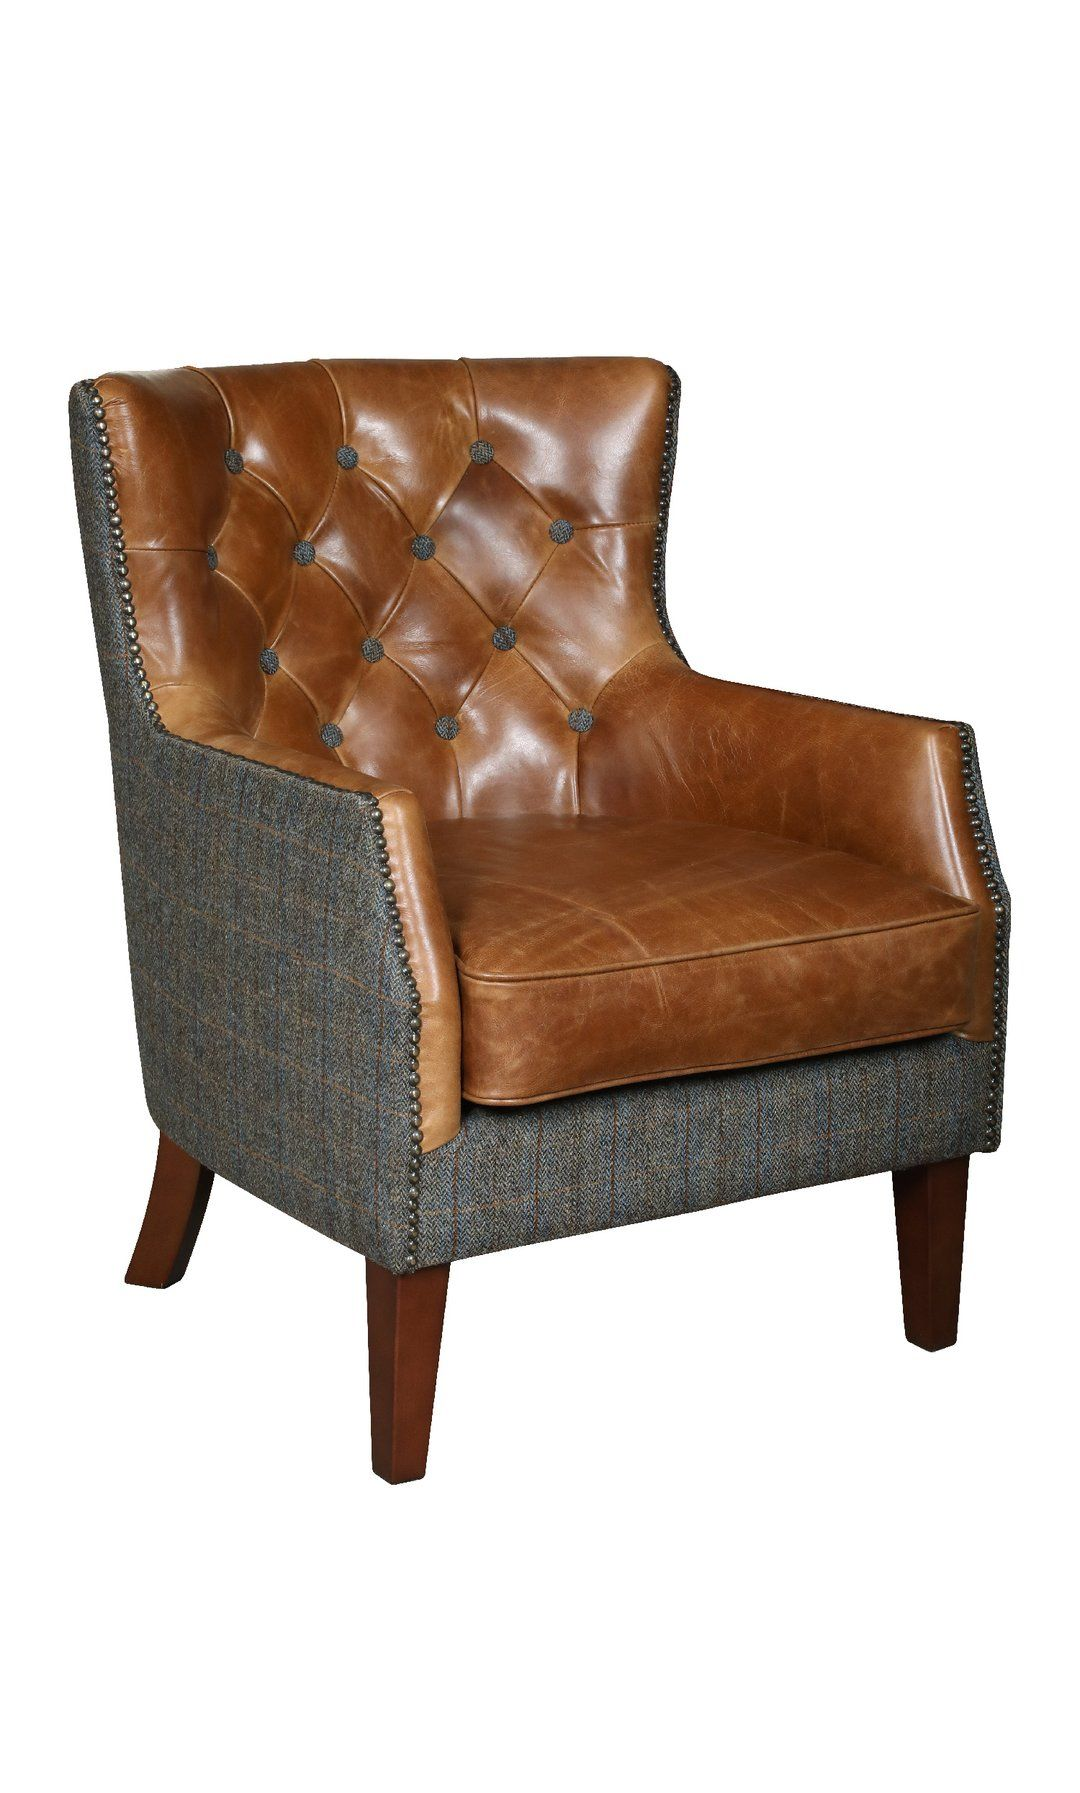 Stanford Harris Tweed and Leather Accent Chair. in 2020